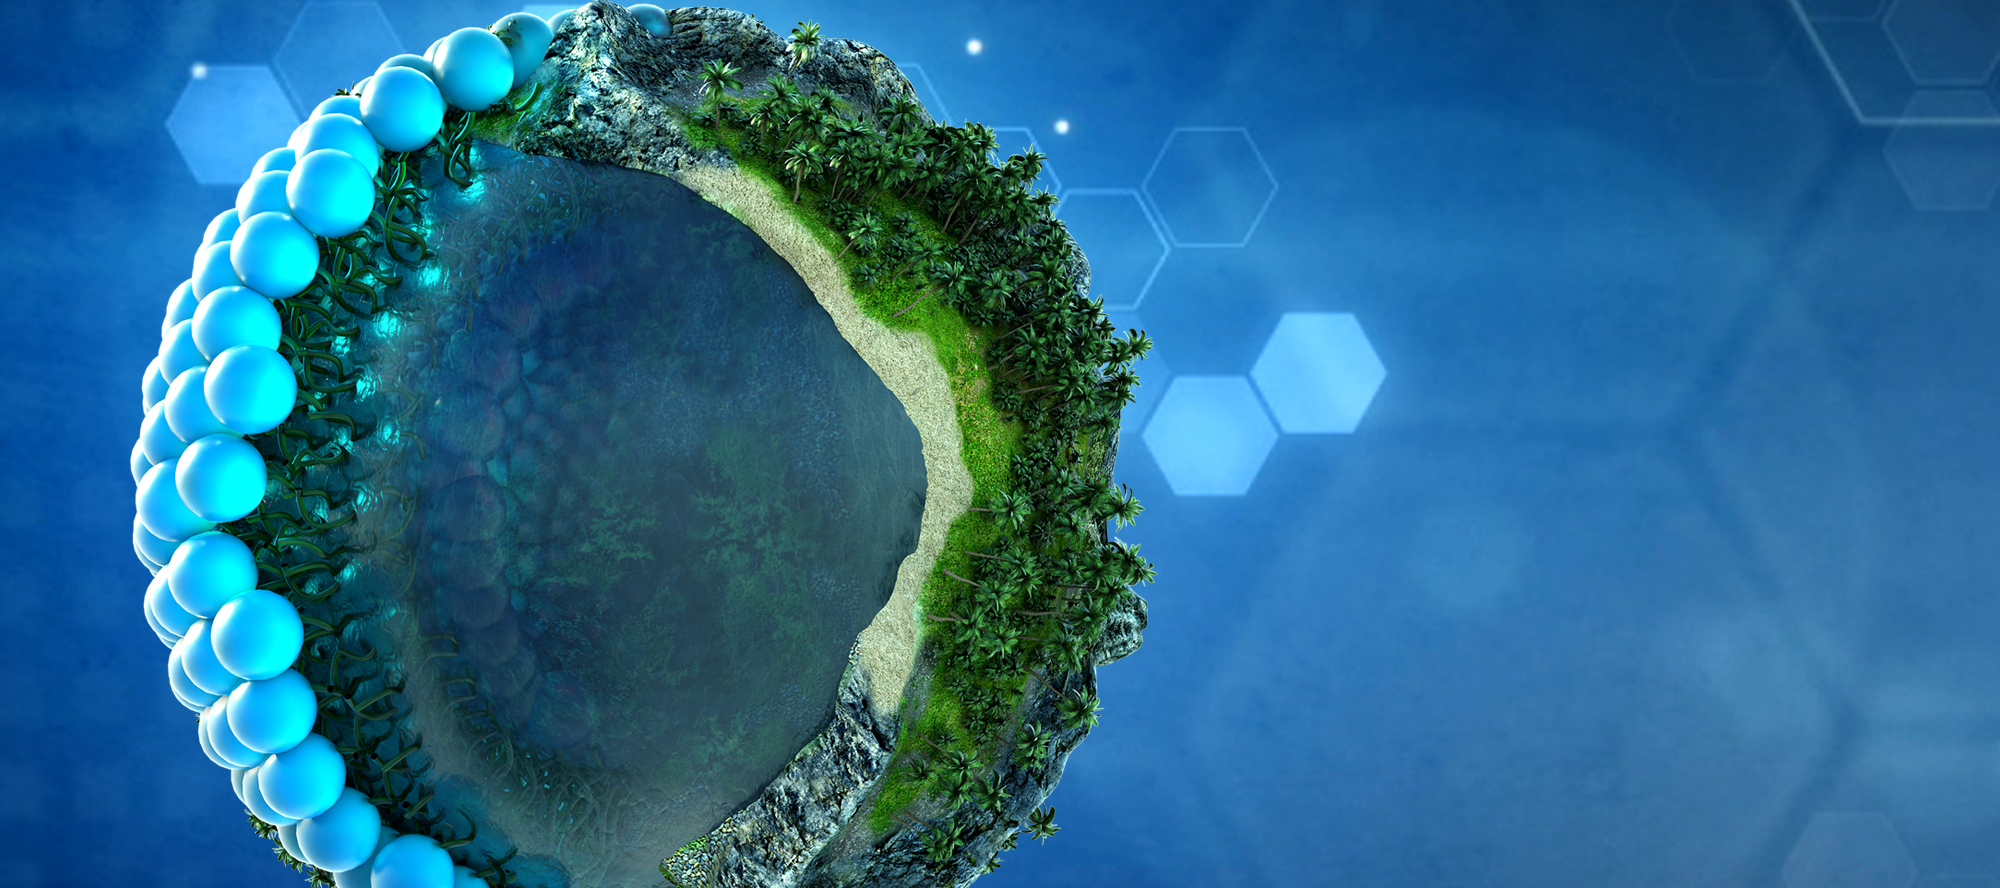 Molecular engineering vision expands into reality